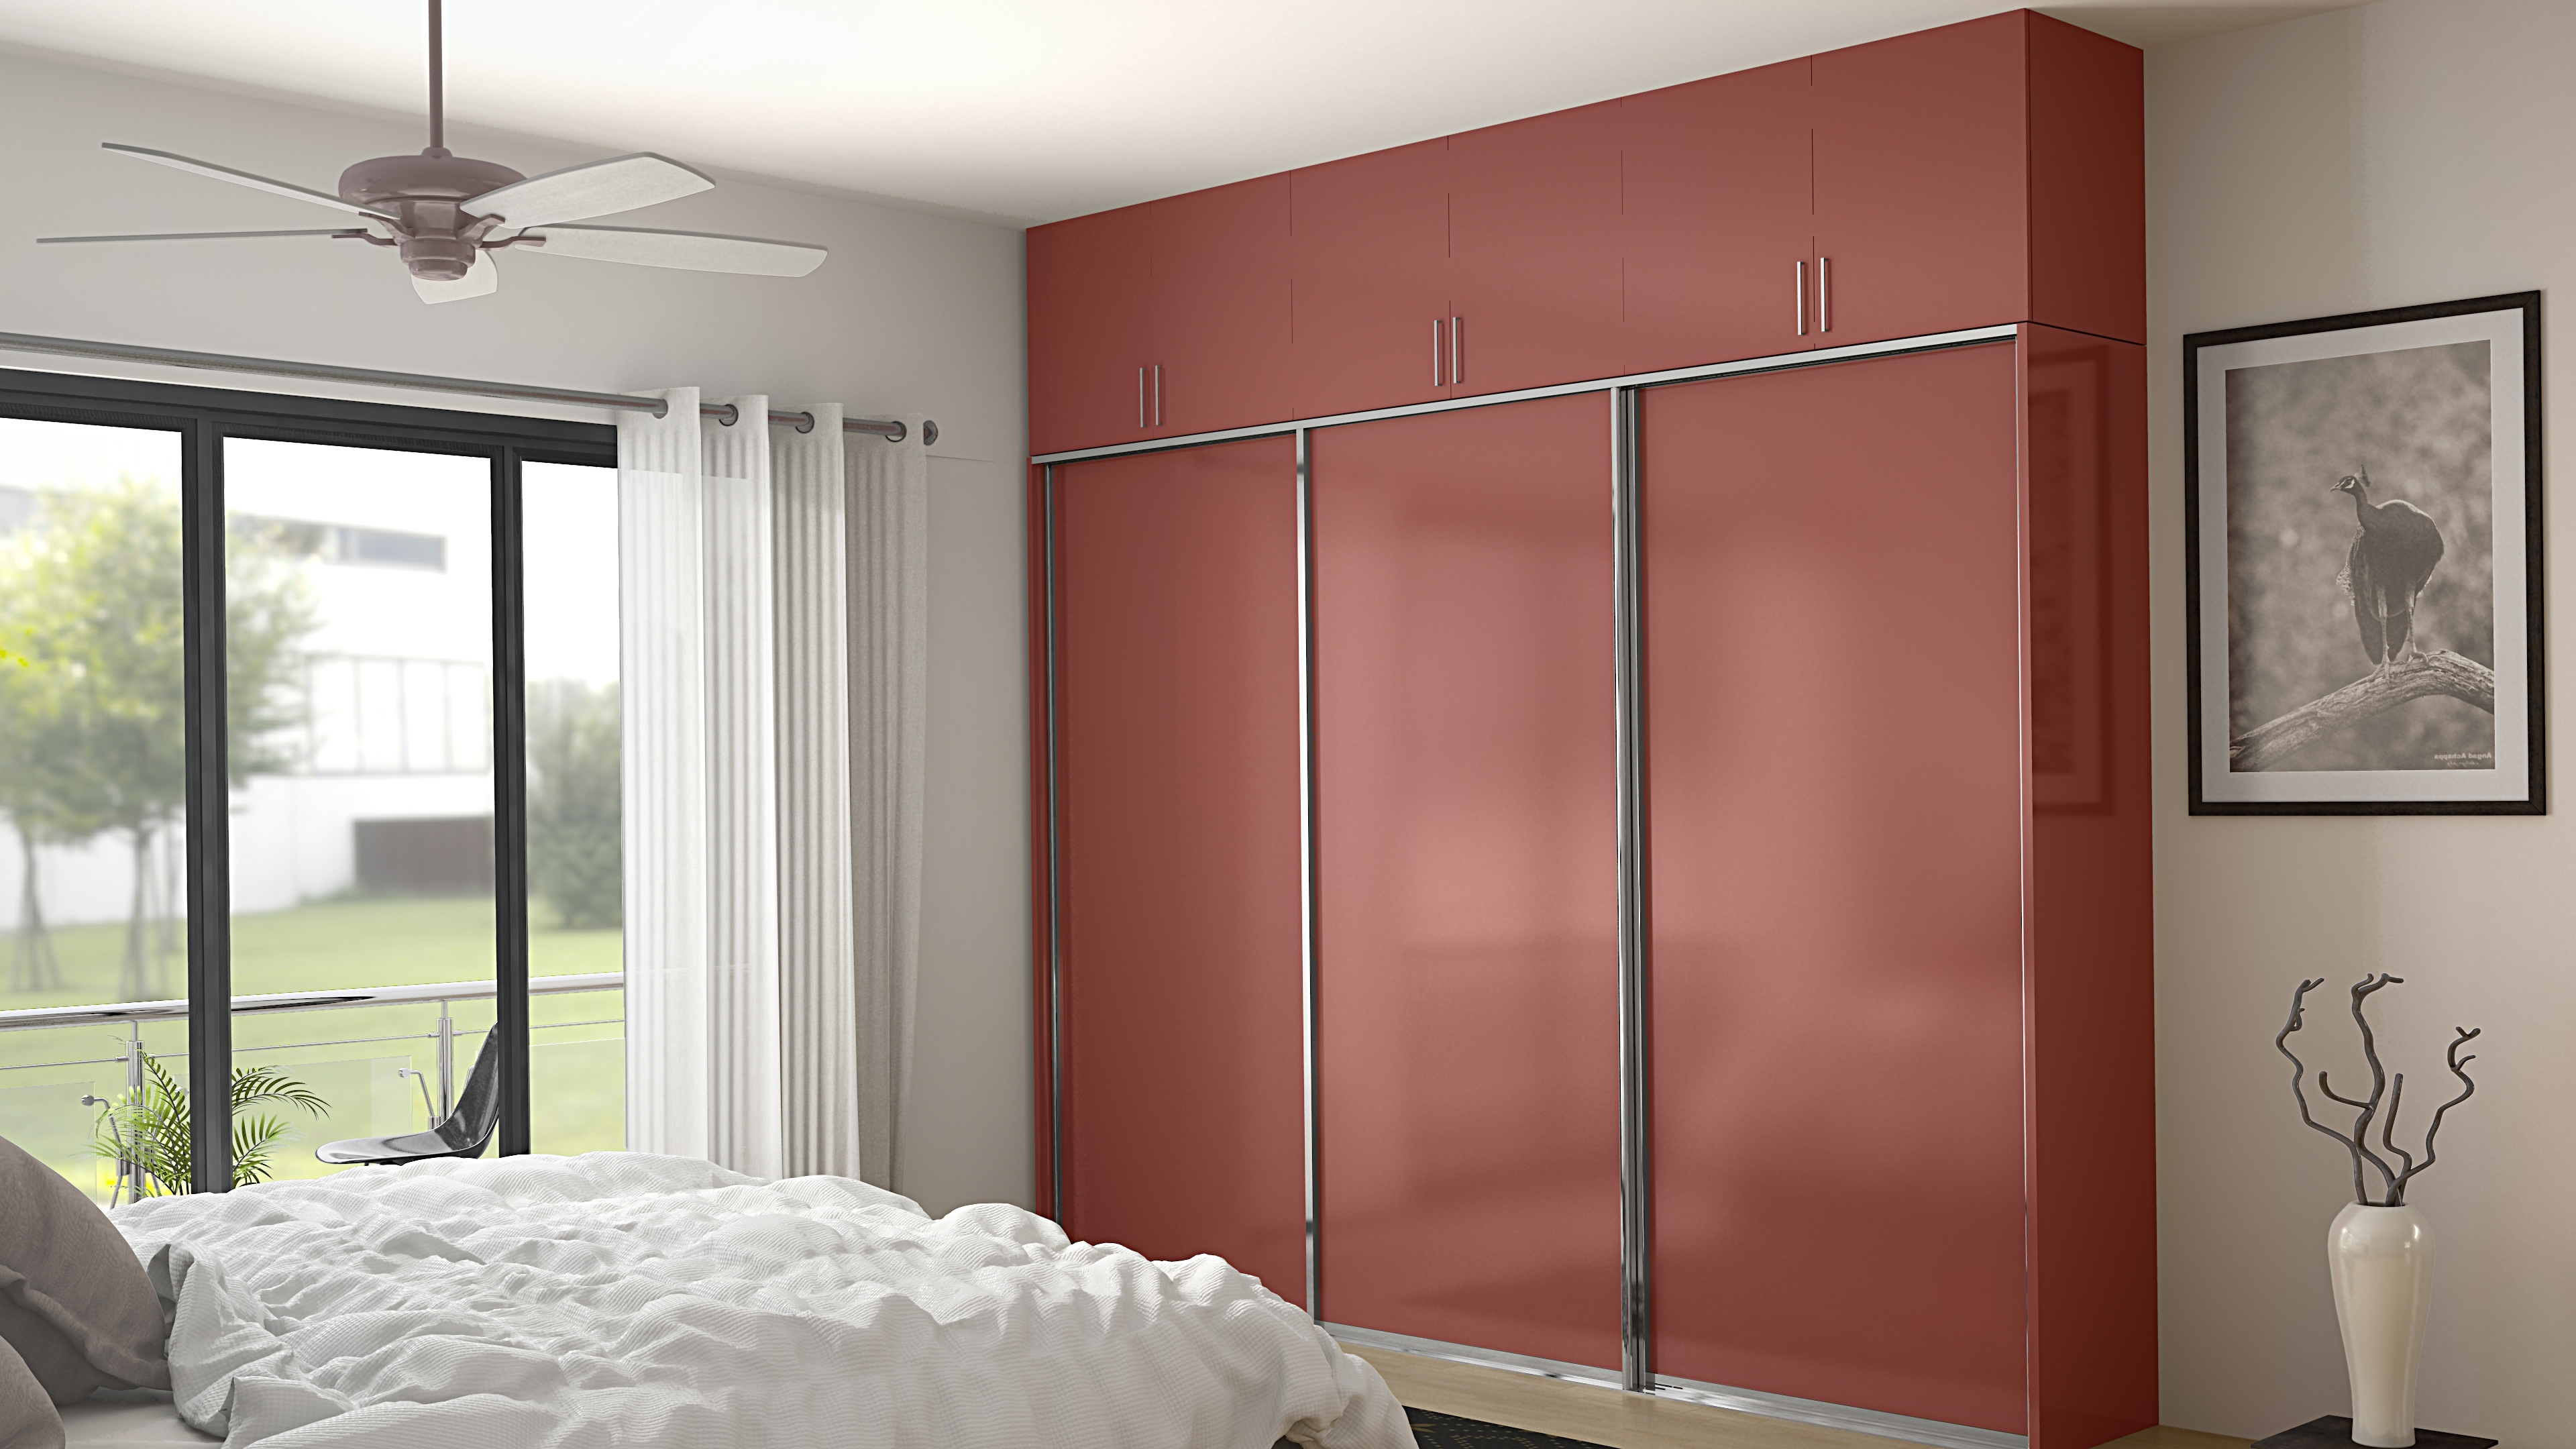 Coloured Wardrobes With Regard To Most Current 6 Trendy Wardrobe Door Designs From Homelane – Homelane Blog (View 7 of 15)